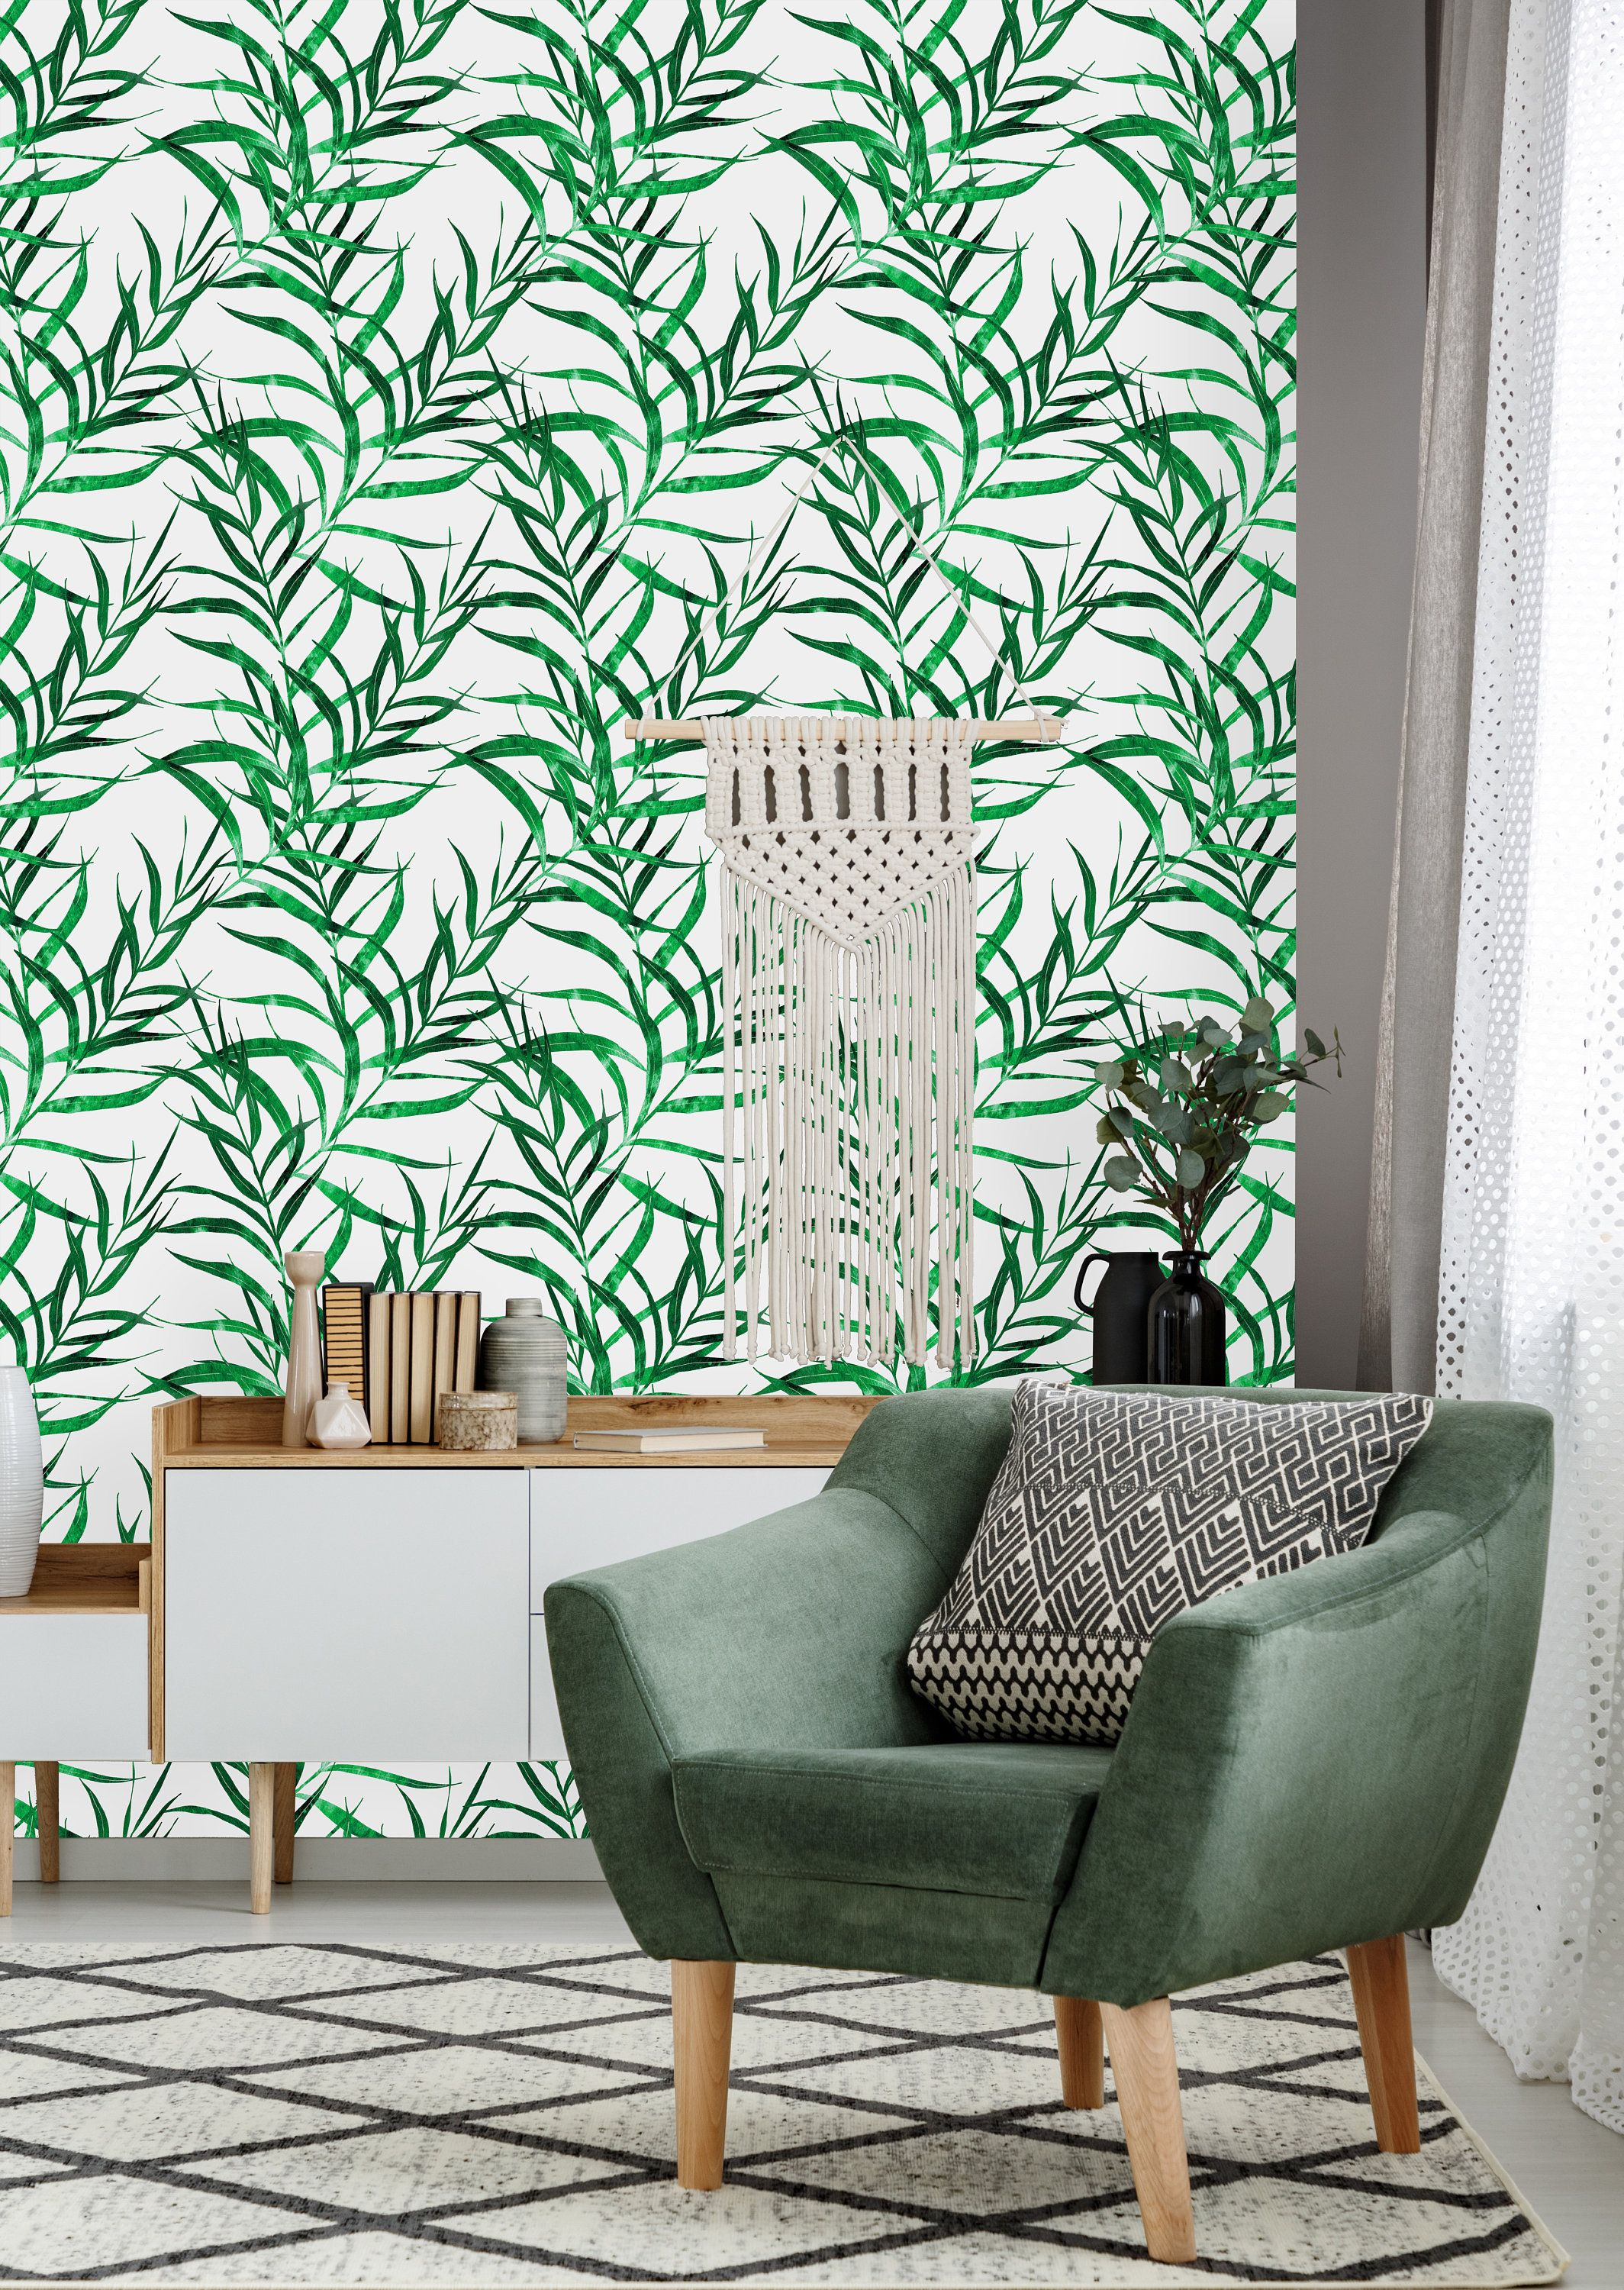 Green Nature Flowers And Leaves Removable Wallpaper Peel And Etsy Wall Murals Wall Wallpaper Home Decor